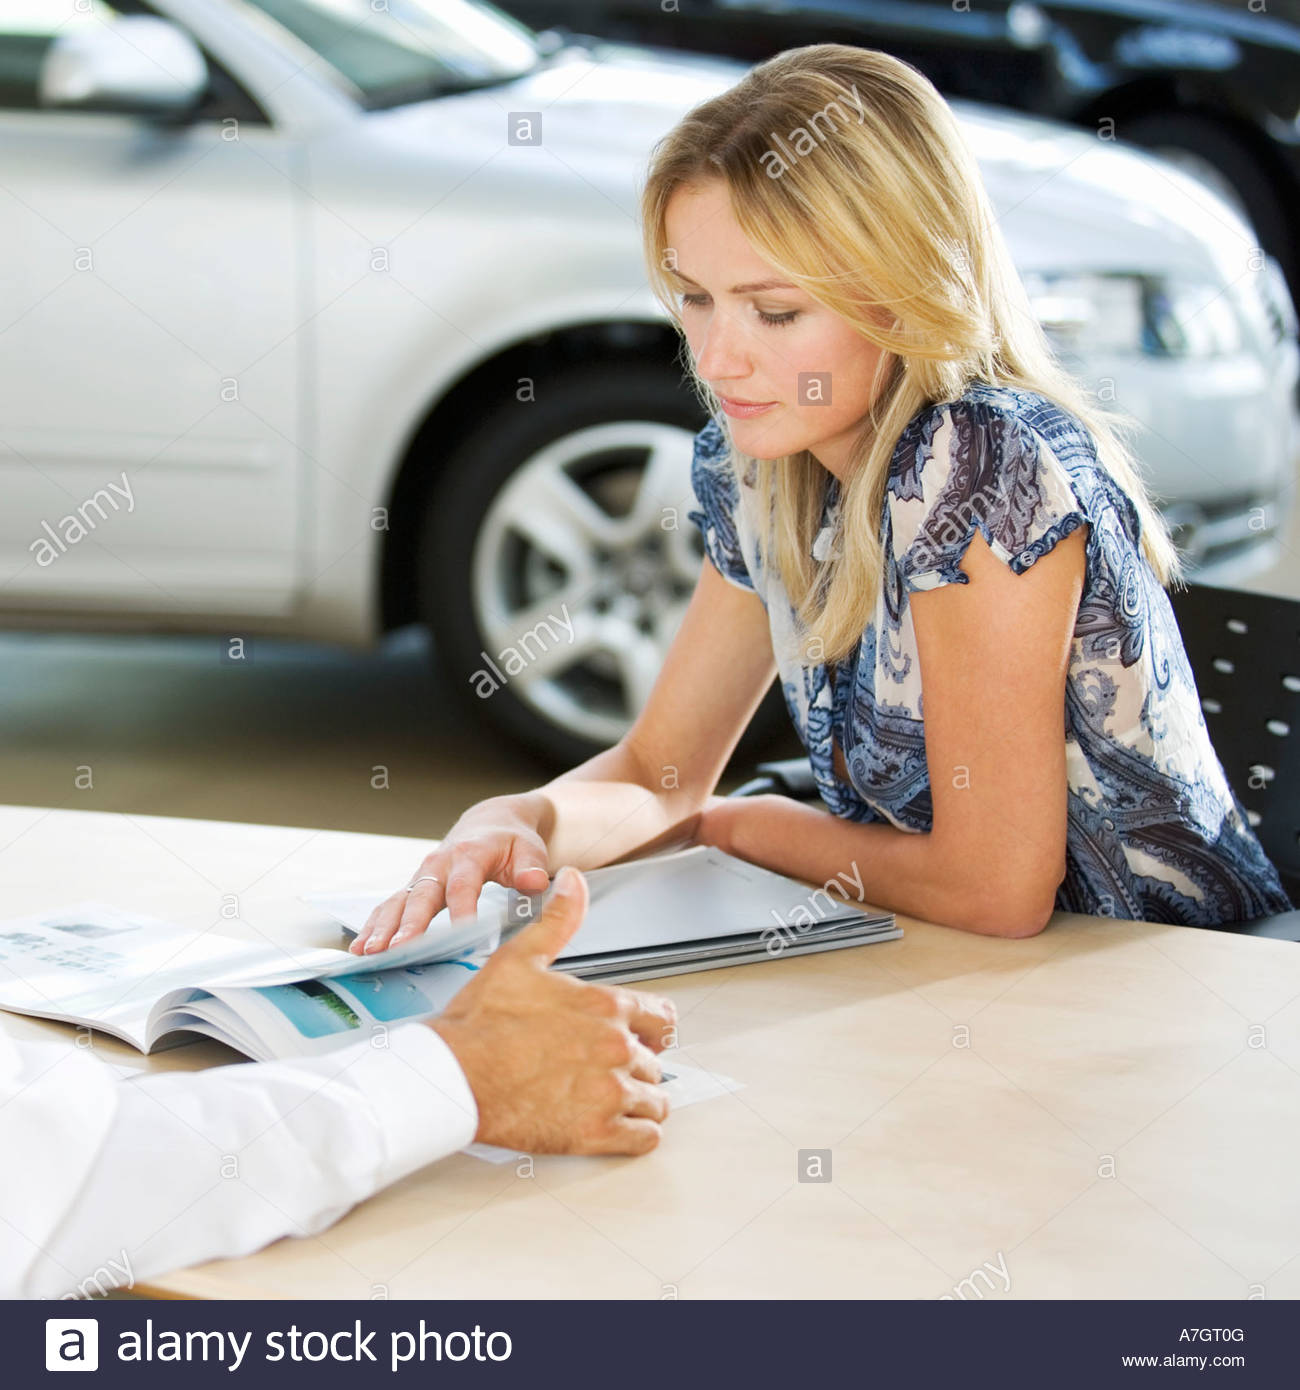 Buying A New Car A Young Woman Buying A New Car Stock Photo 11837055 Alamy